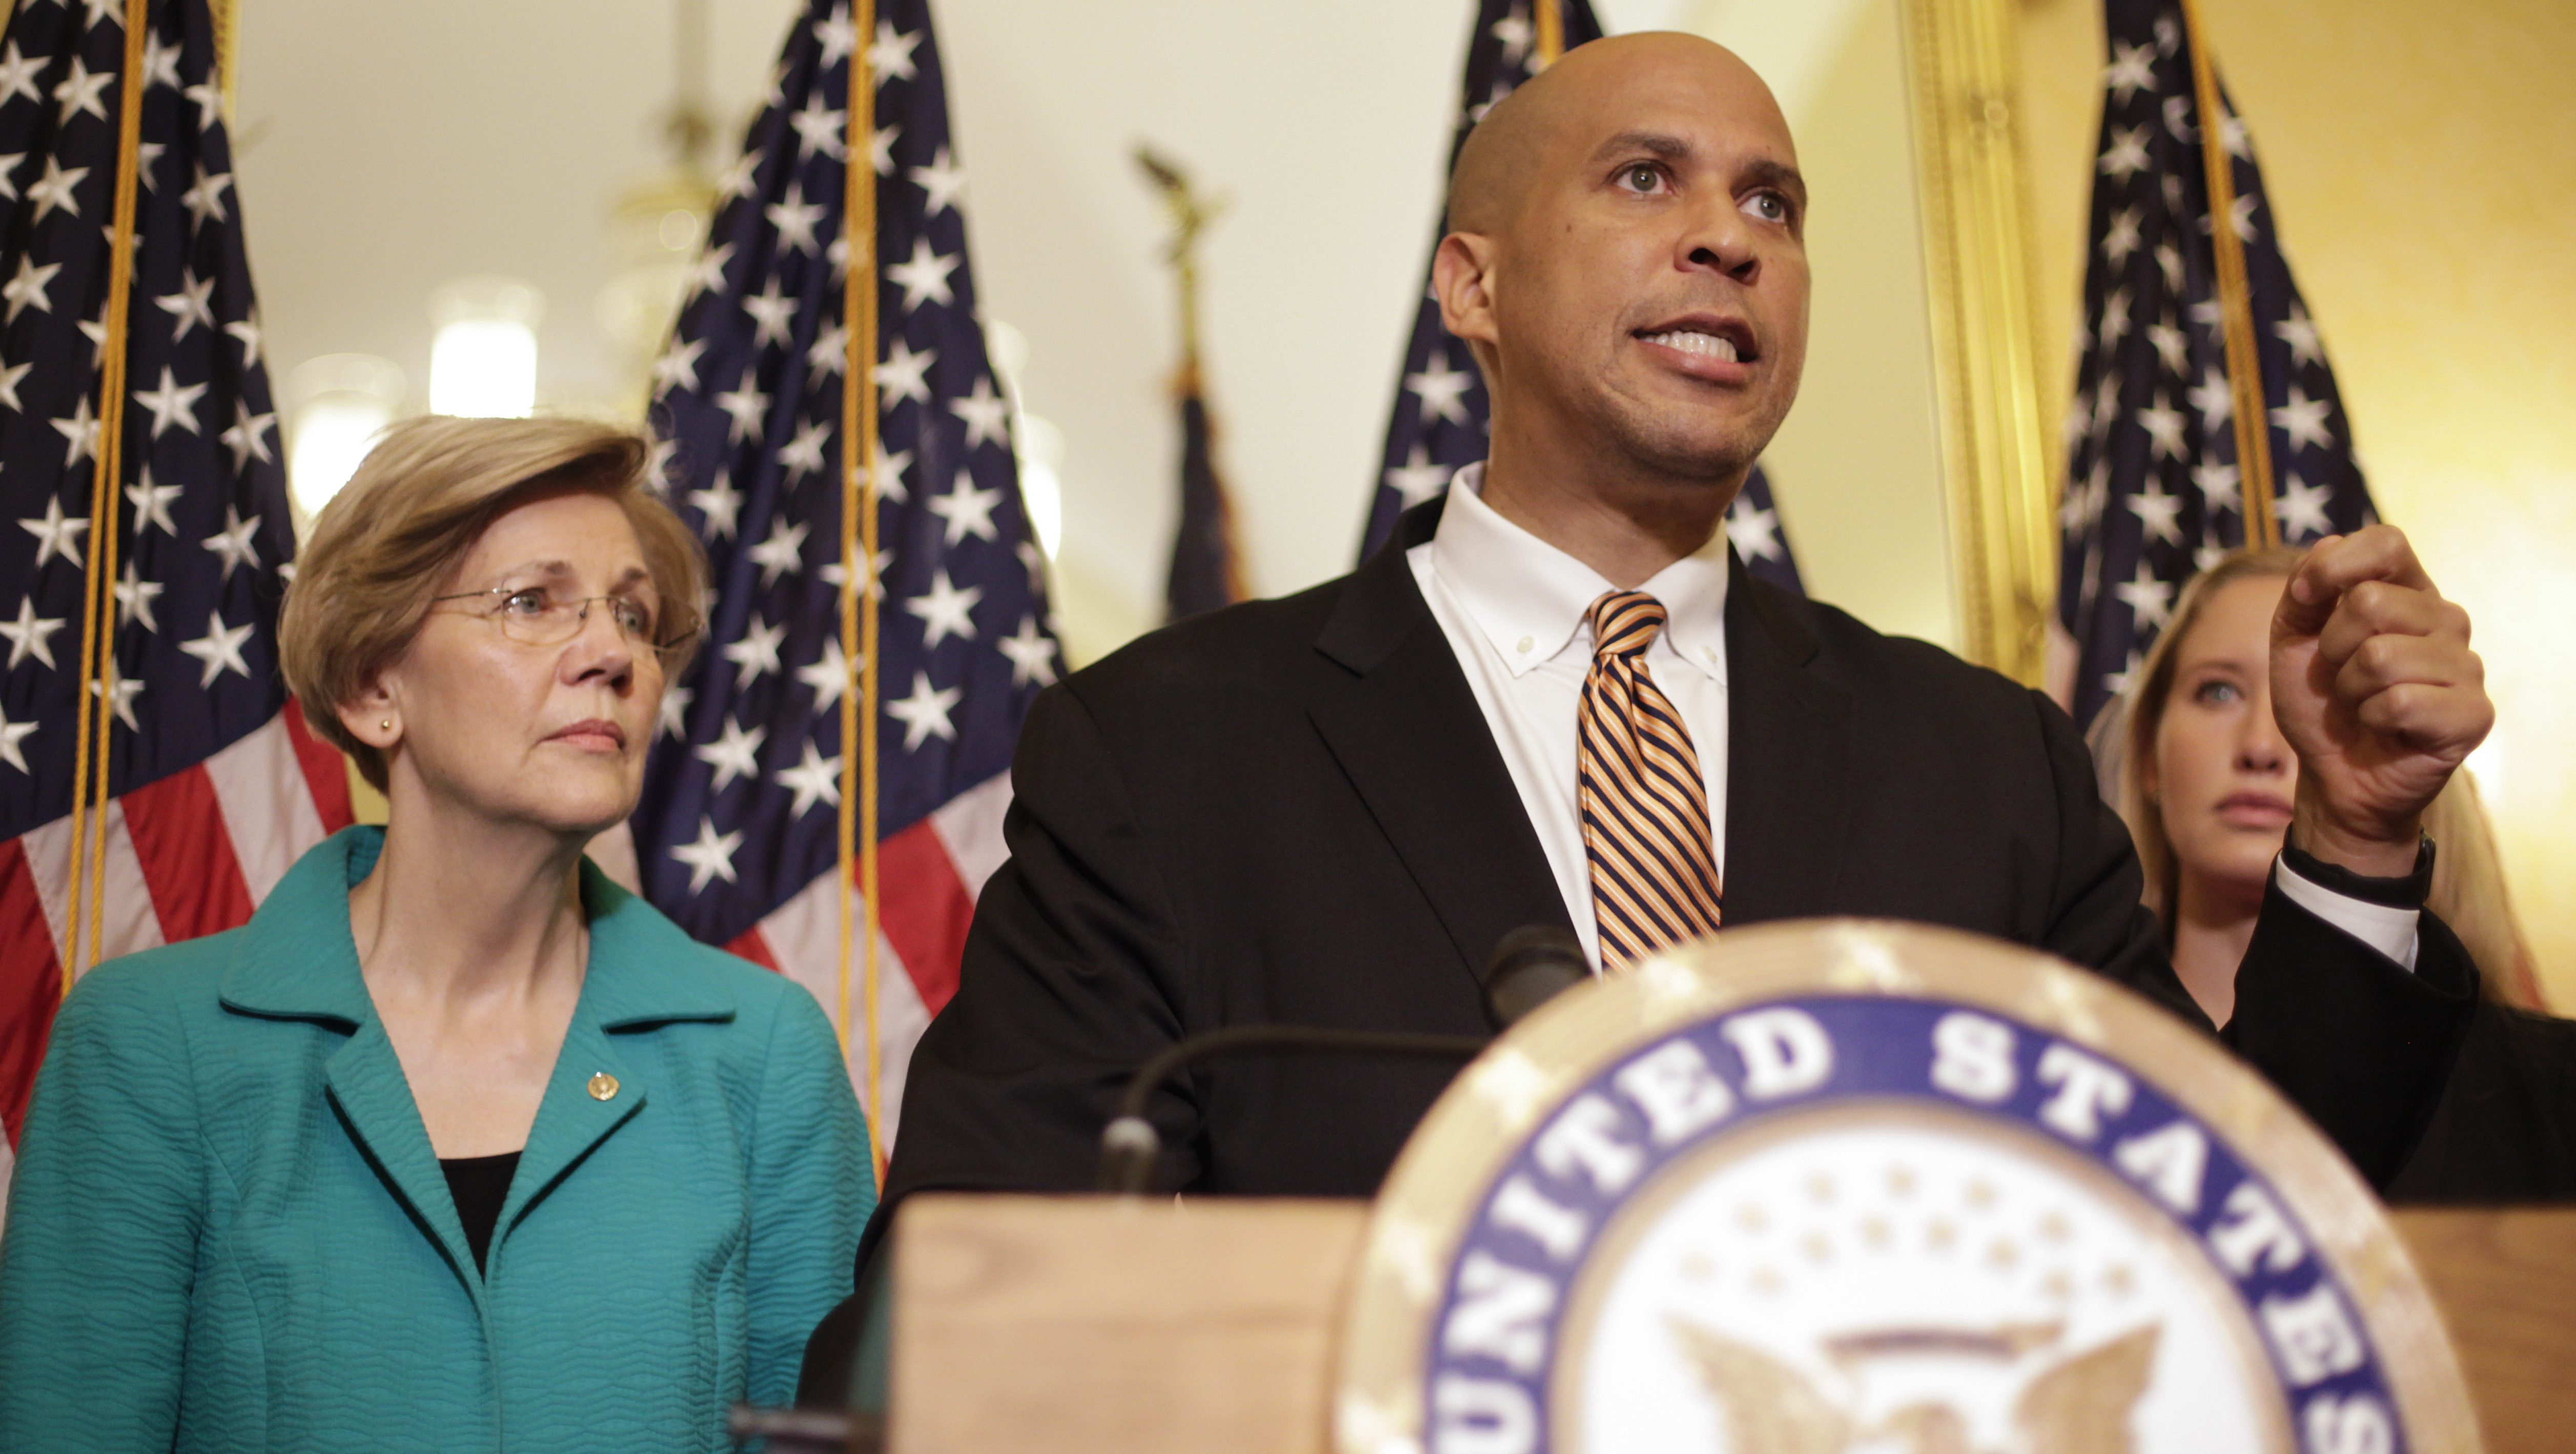 Sen. Cory Booker, D-N.J. and Sen. Elizabeth Warren, D-Mass. participate in a news conference on Capitol Hill in Washington, Tuesday, July 11, 2017, to discuss the introduction of the Dignity for Incarcerated Women Act. The bill helps address some of the unique challenges women face while in prison. (AP Photo/Pablo Martinez Monsivais)